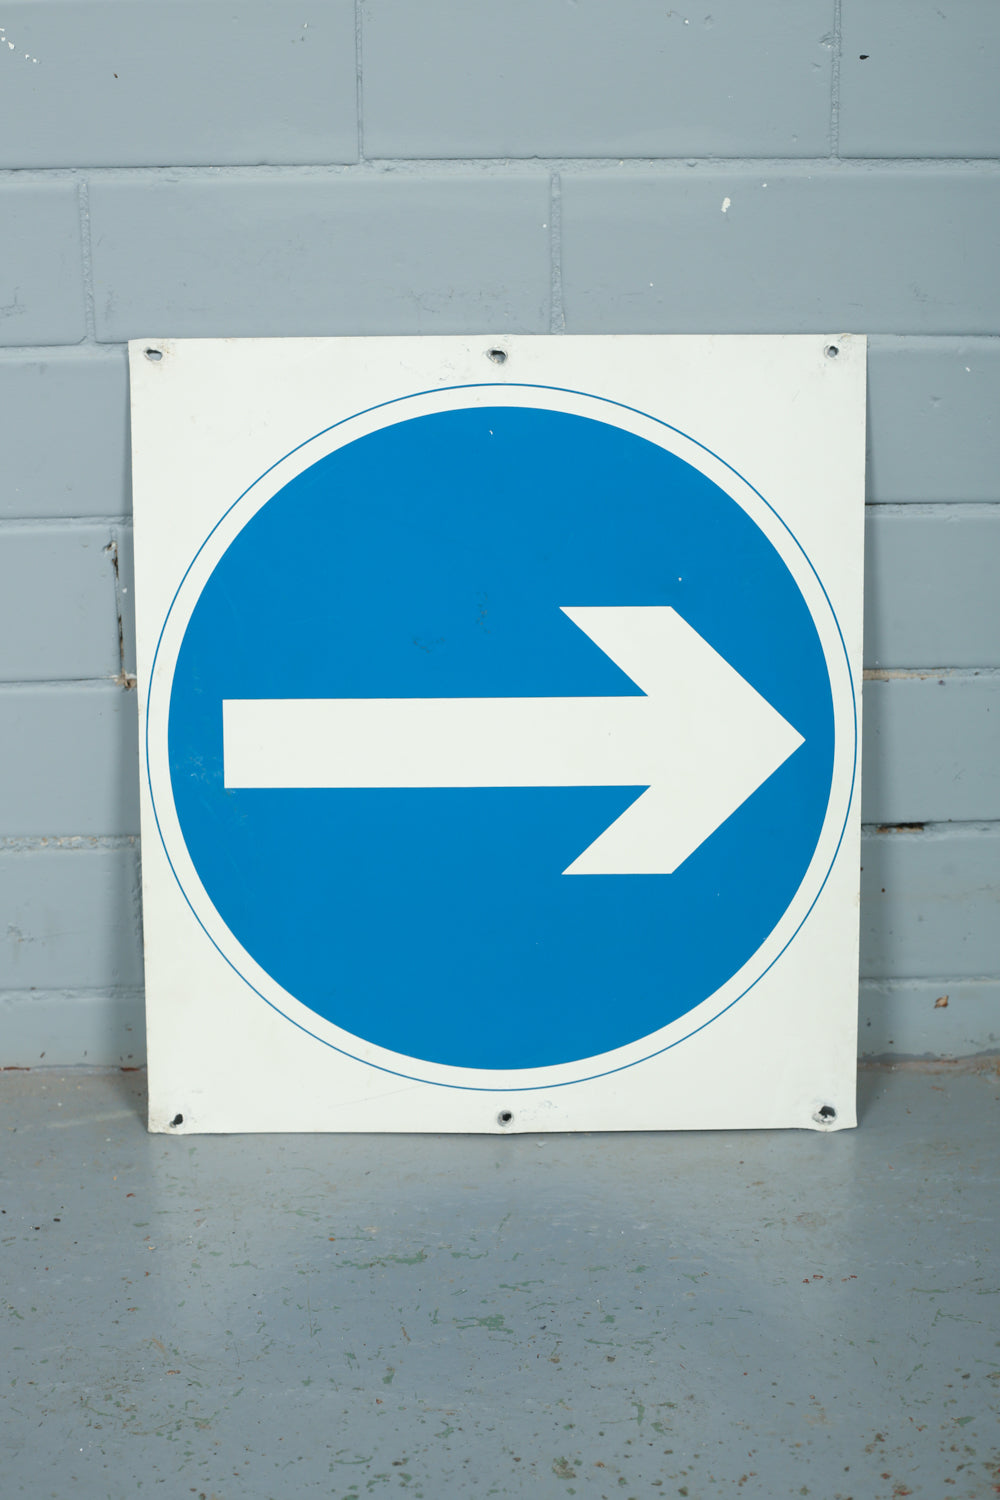 Blue and white original enamel arrow traffic signs available to buy from Industrious Interiors, an online vintage furniture and homeware store based in Nottingham, England.